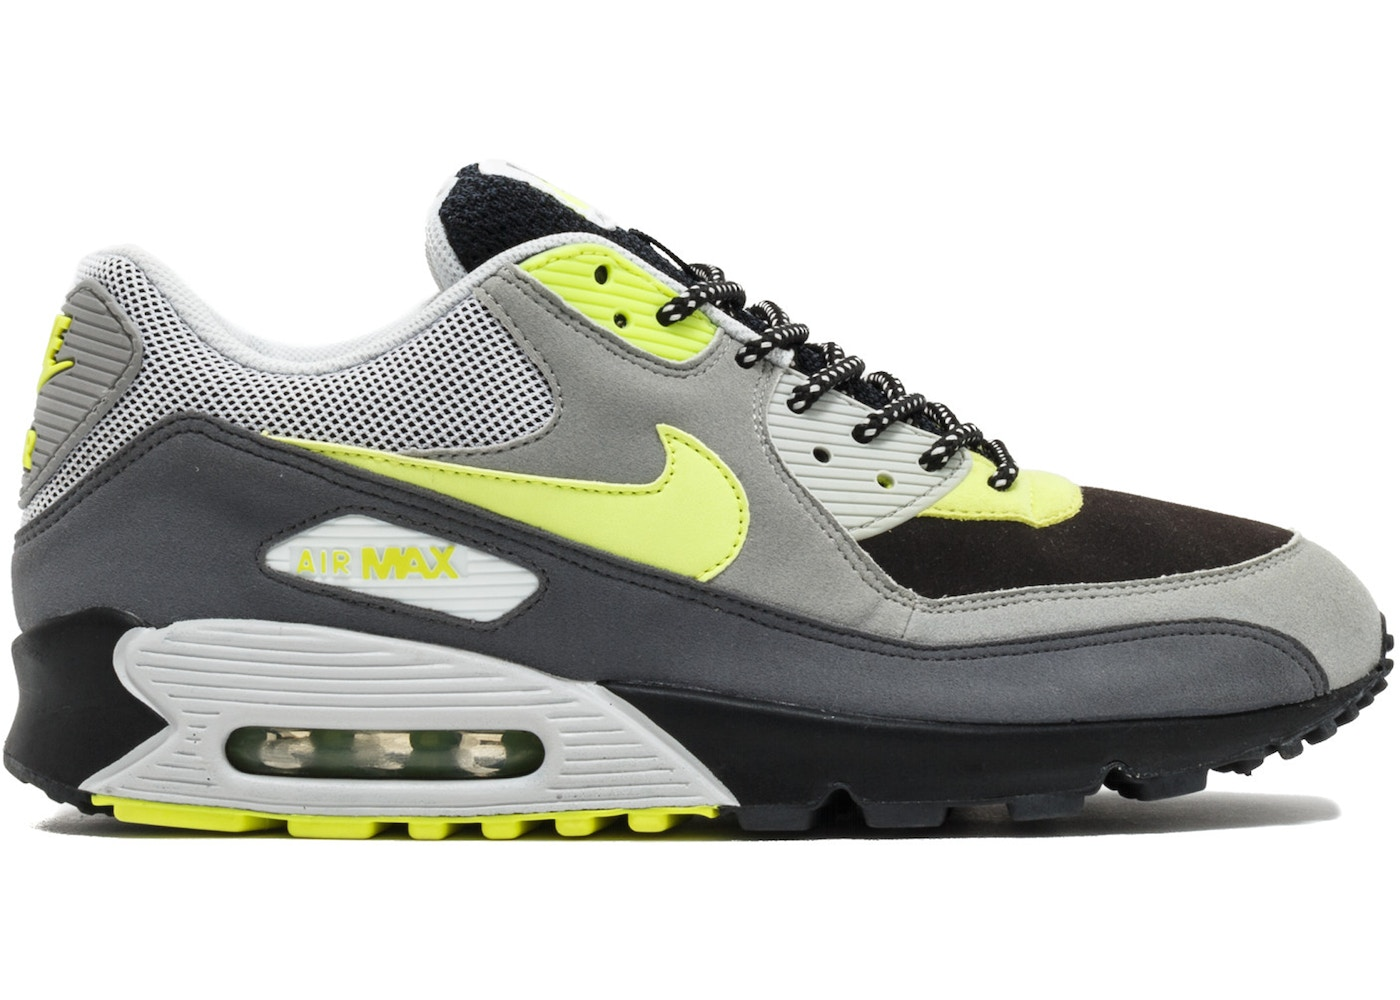 cheap for discount ed03f 13a10 Air Max 90 Dave White Neon Pack - 309299-014